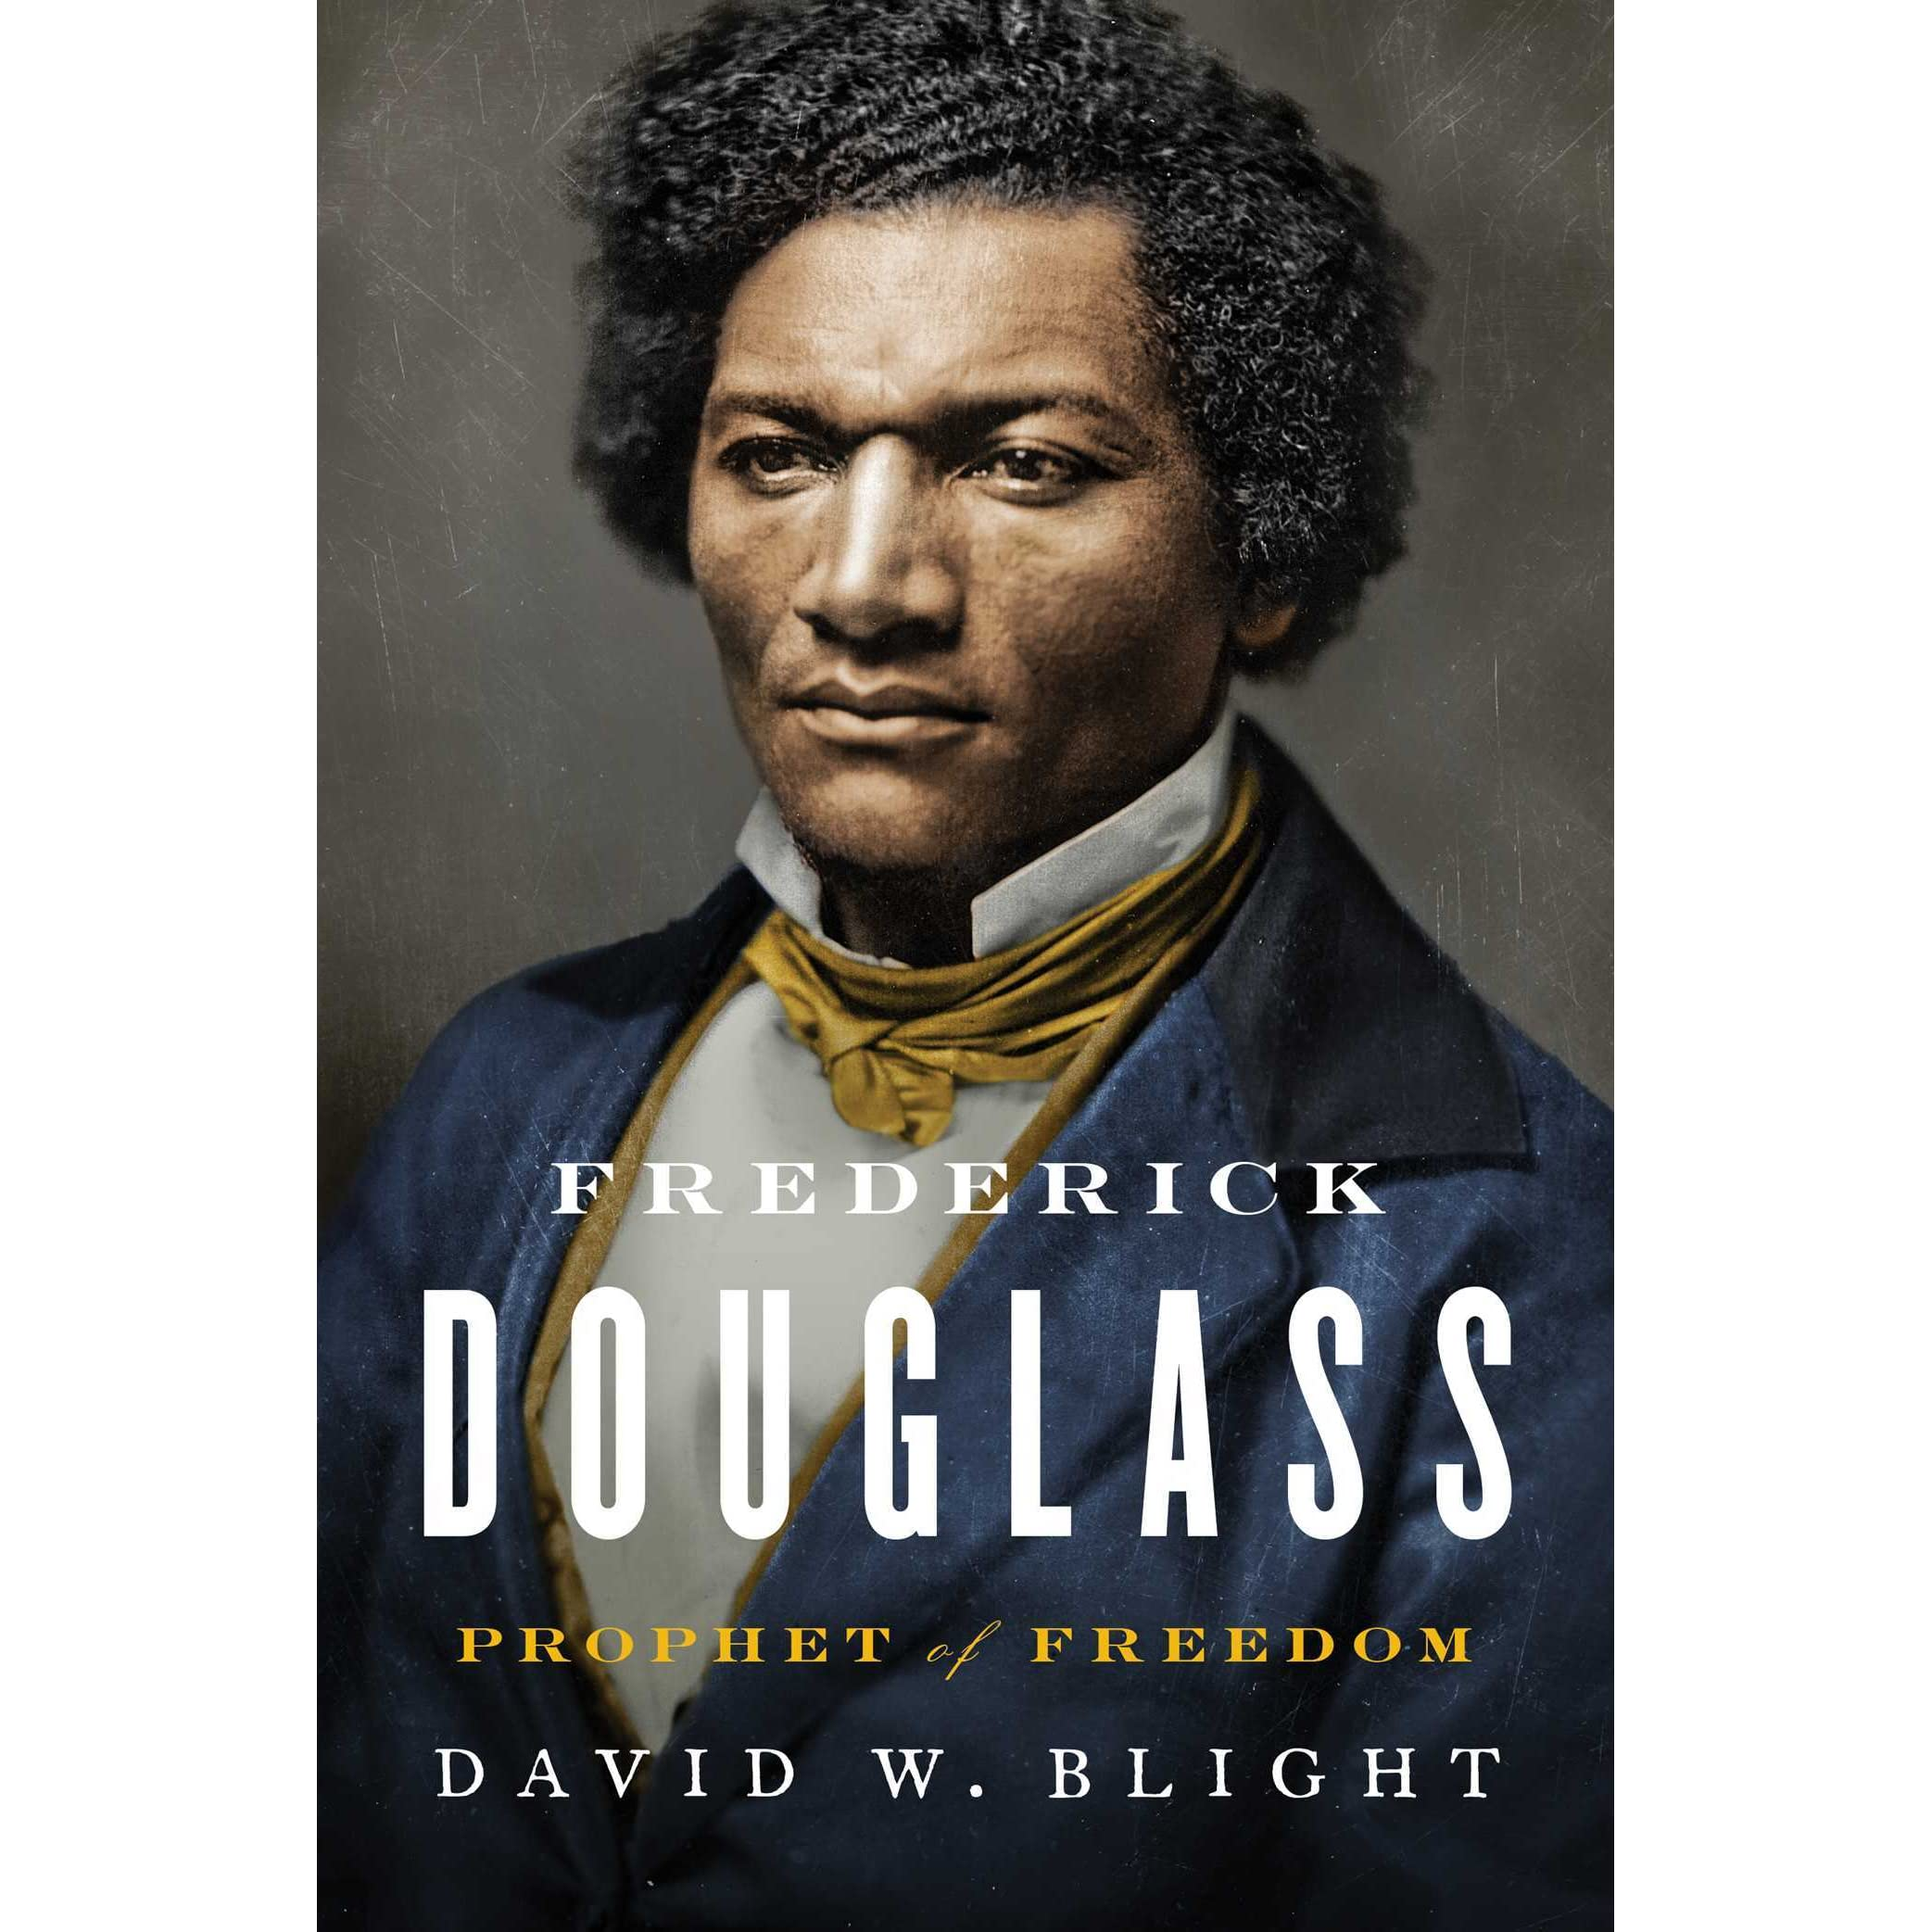 frederick douglass connection between education and freedom